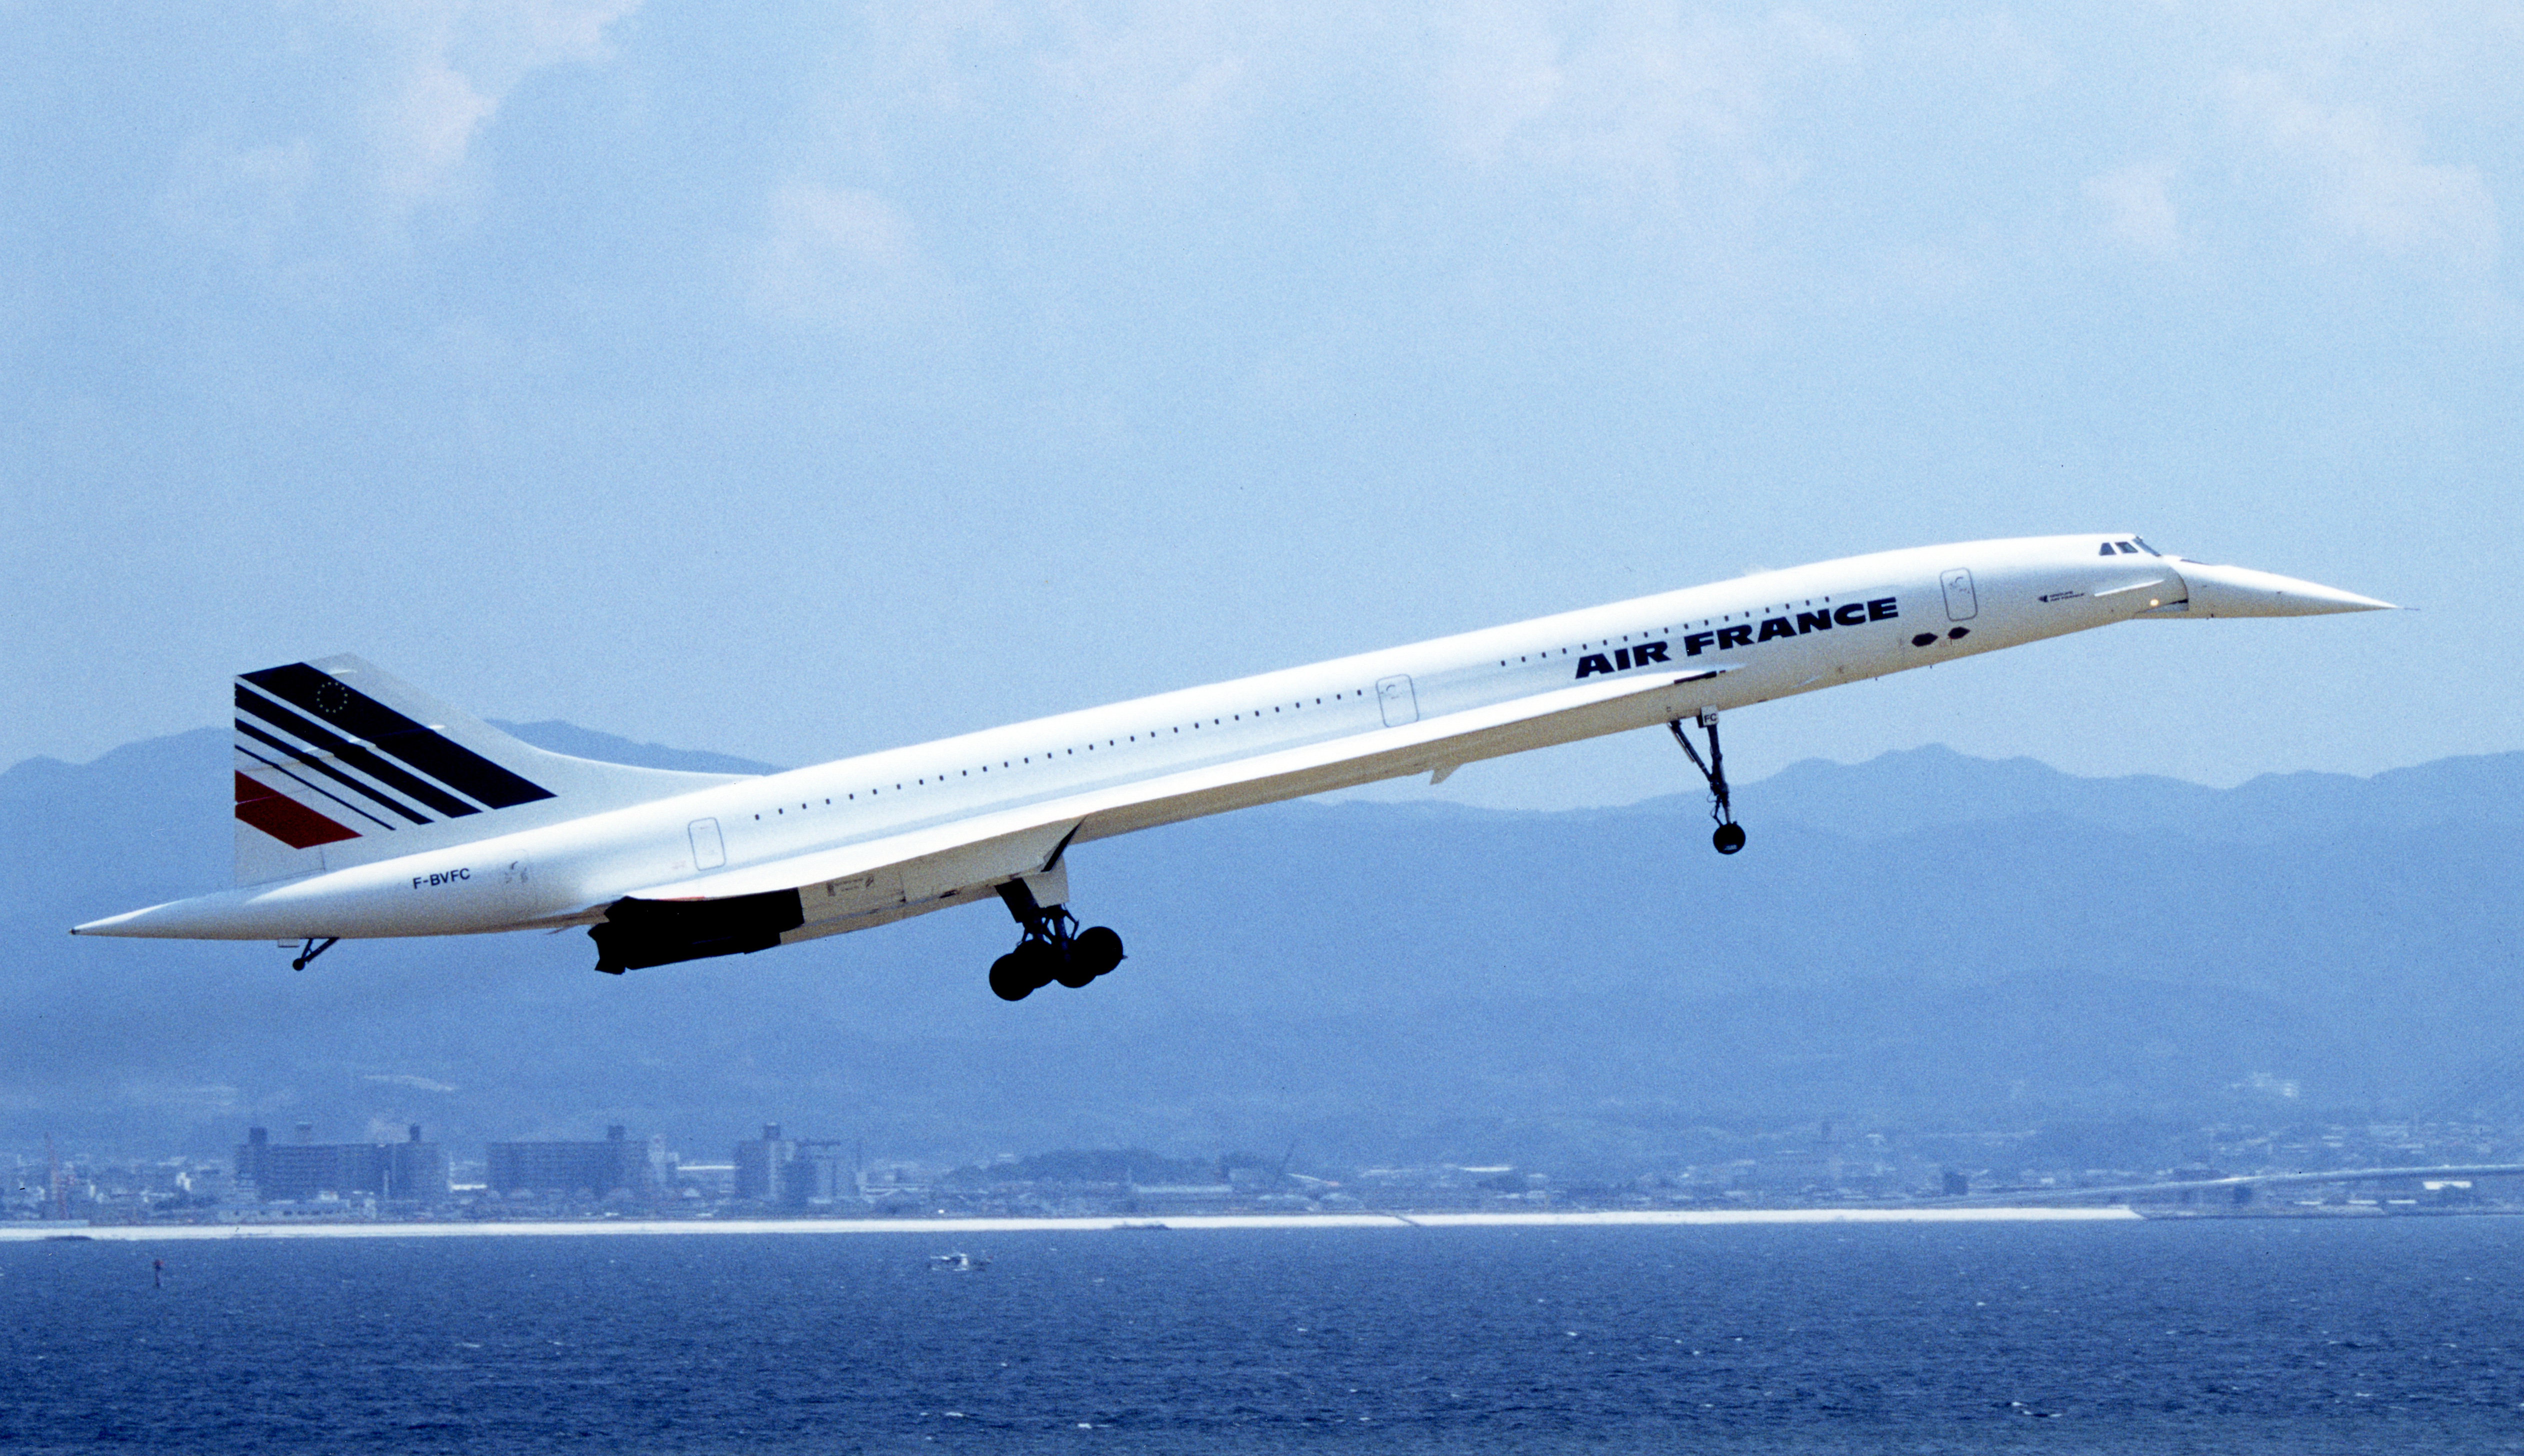 File Name: #998717 HD Concorde Wallpapers and Photos | HD Planes ...